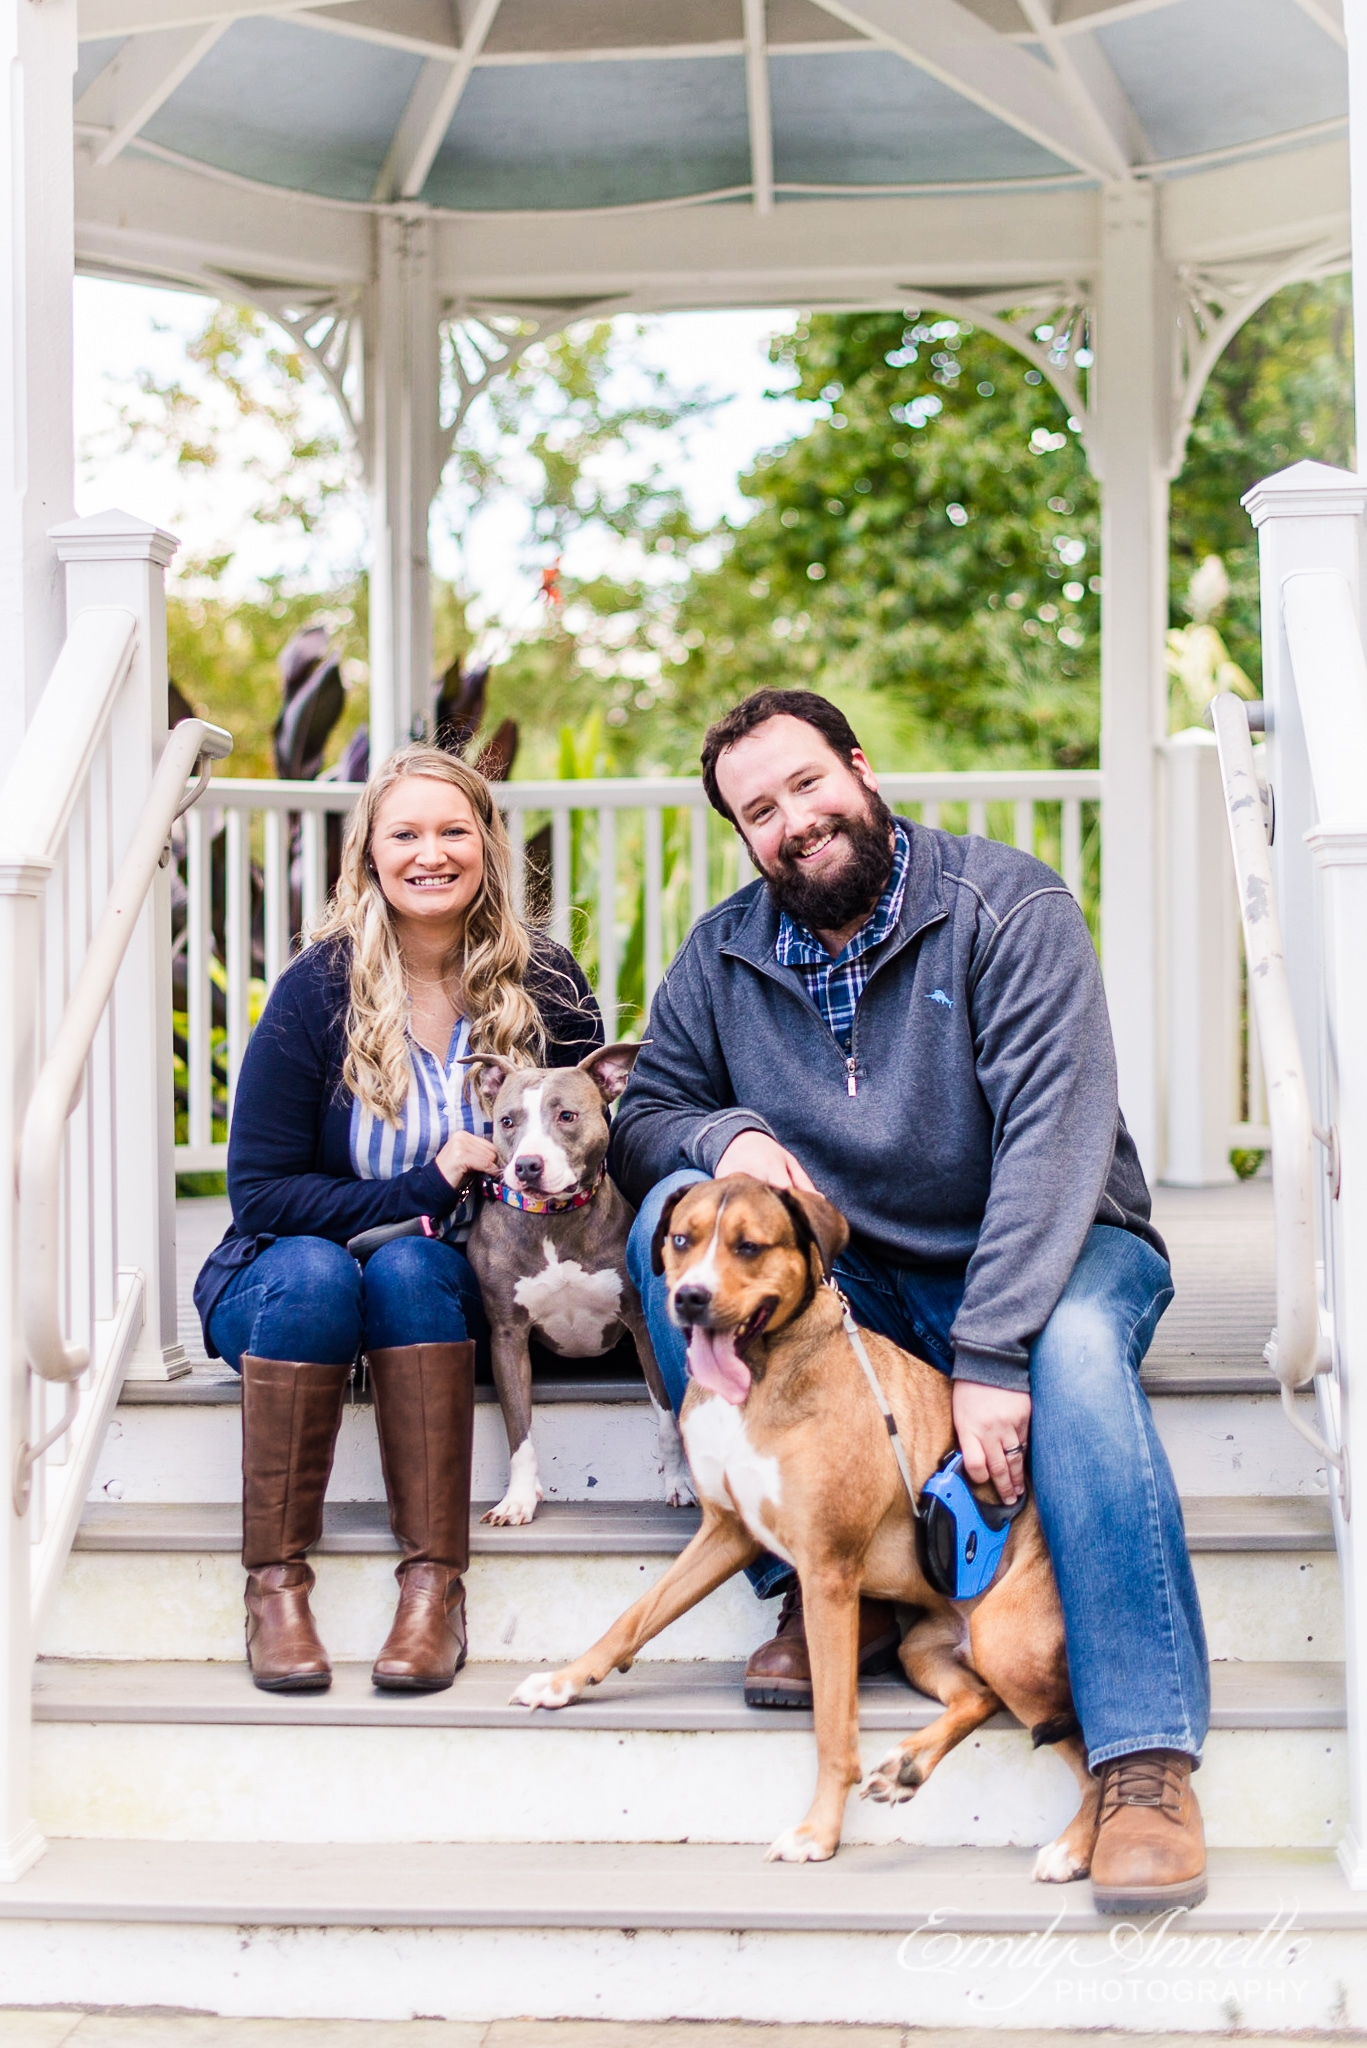 A couple posing together on the stairs to a gazebo while holding their two dogs in the garden at Green Spring Gardens Park in Fairfax, Virginia